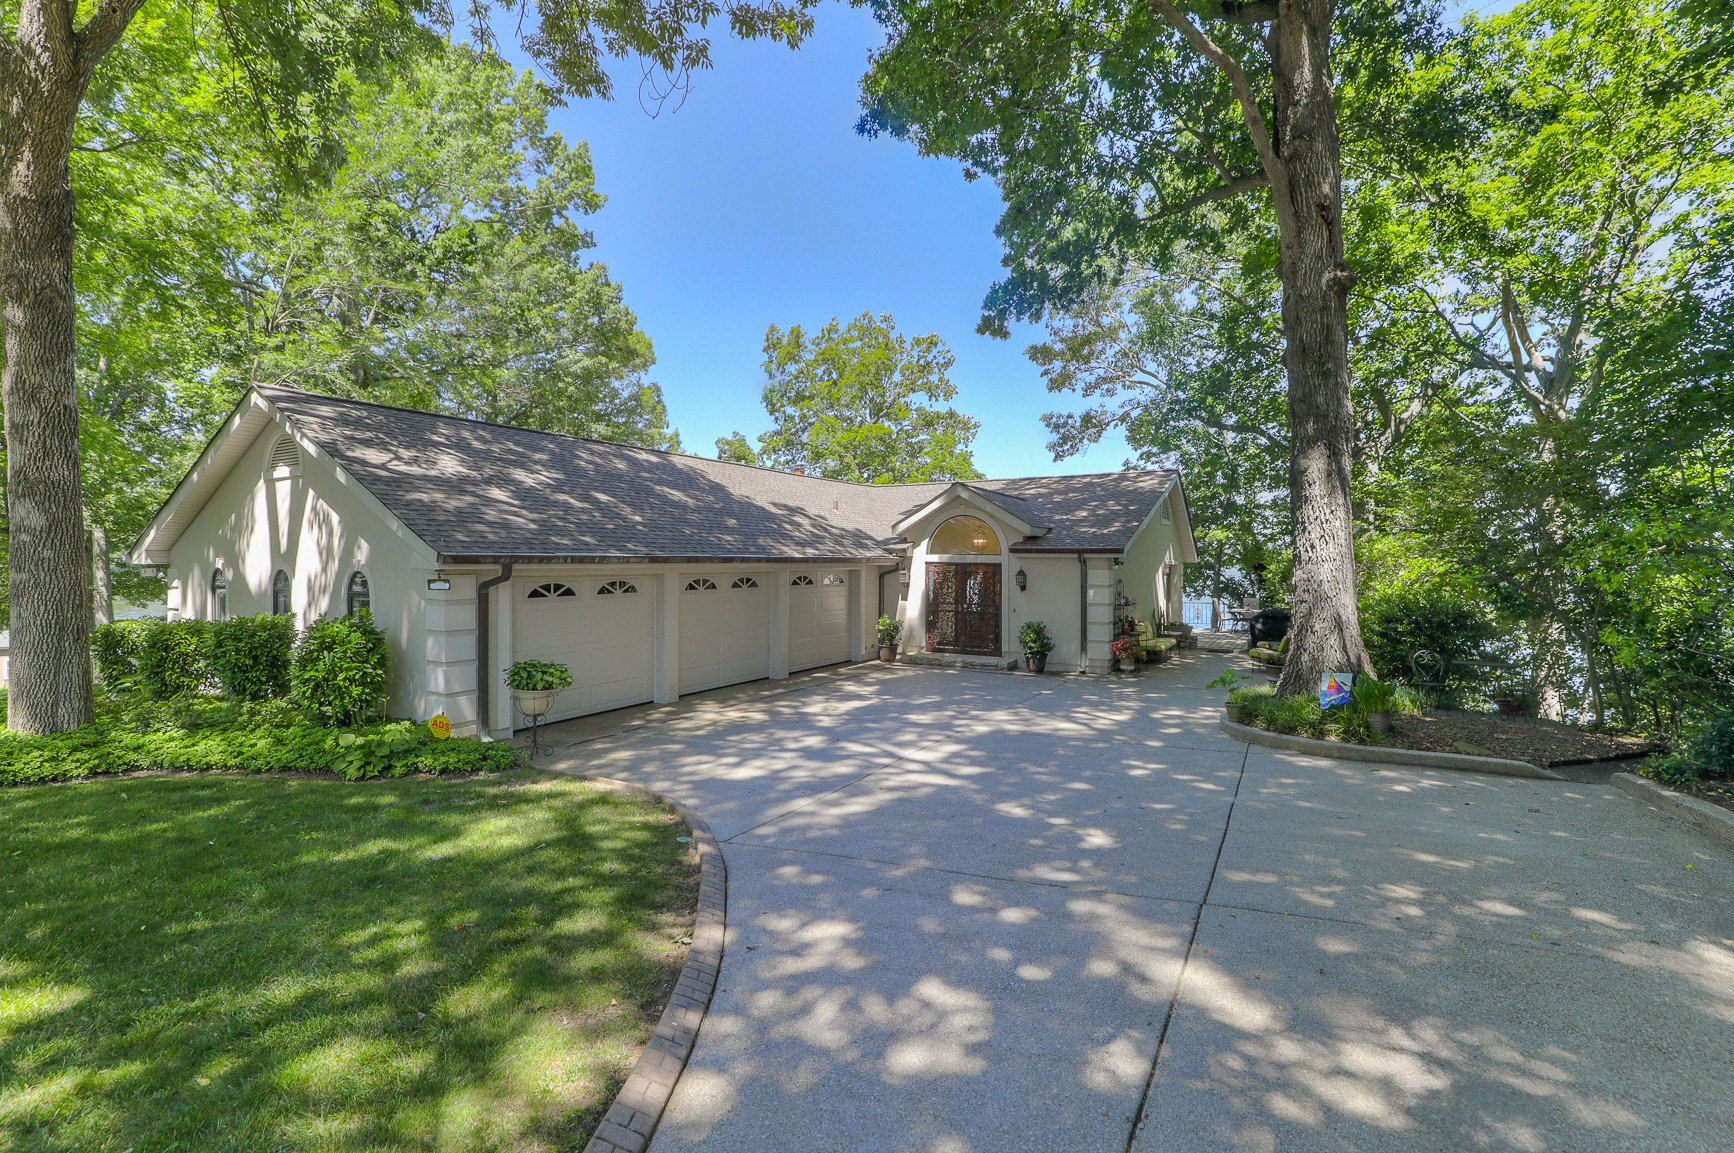 Amazing panoramic 360 views of Old Hickory Lake. Open floor plan w/ high ceilings. Hardwood/slate/tile/carpet floors. Deep water dock with lift. deep 3 car garage, new roof in 2012,18 x 18 florida room/sunroom is heated/cooled or screened porch. Unforgettable views thru the replaced picture windows & casement windows throughout the home. Granite in kitchen w/ maple cabinets. Hvac's in 2012 & 2016, New hot water heater, on city sewer w/ lifetime service warranty, home office off garage.